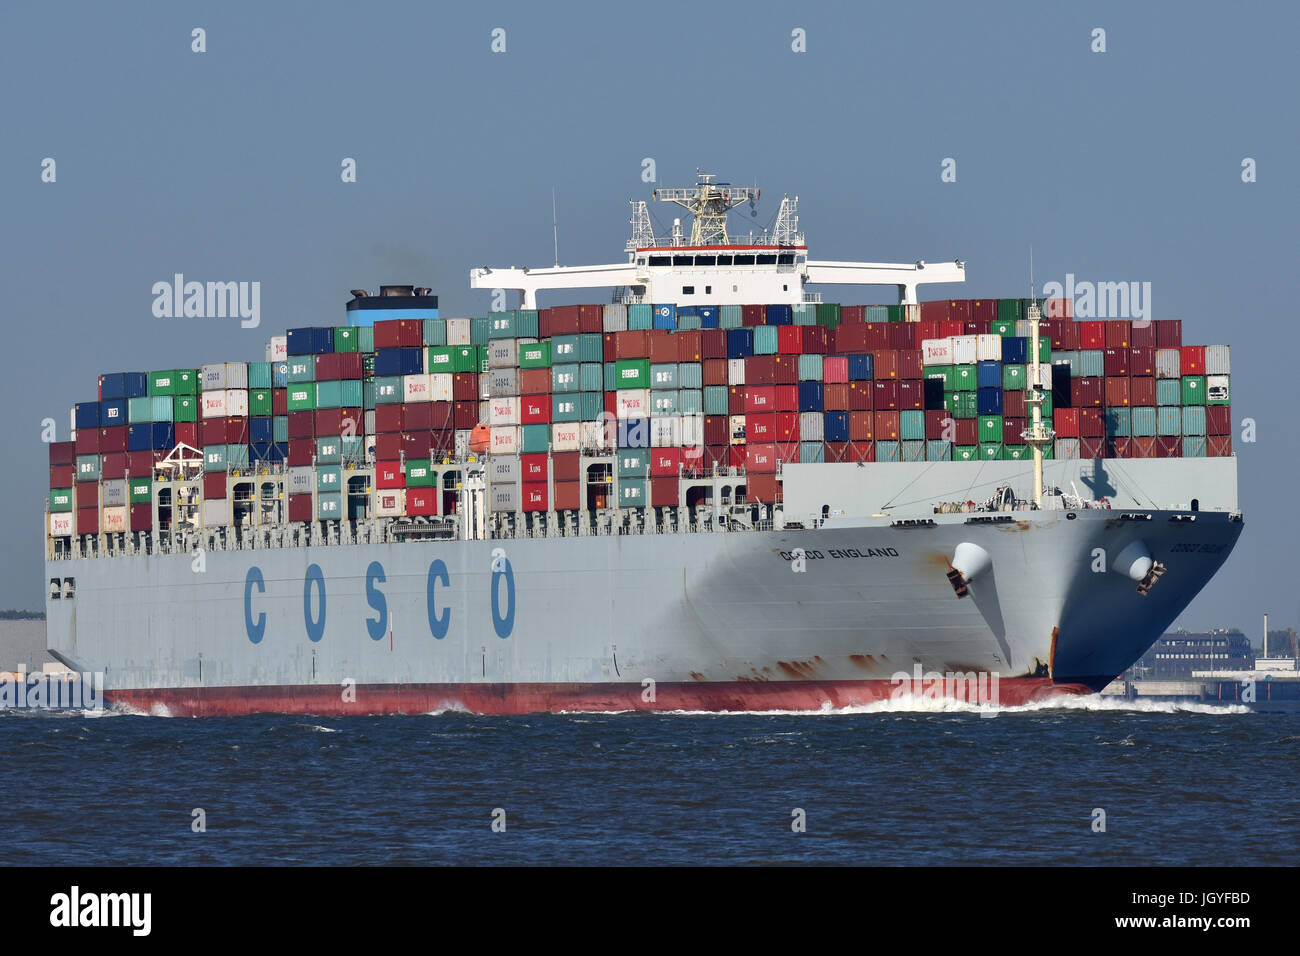 COSCO England Stock Photo